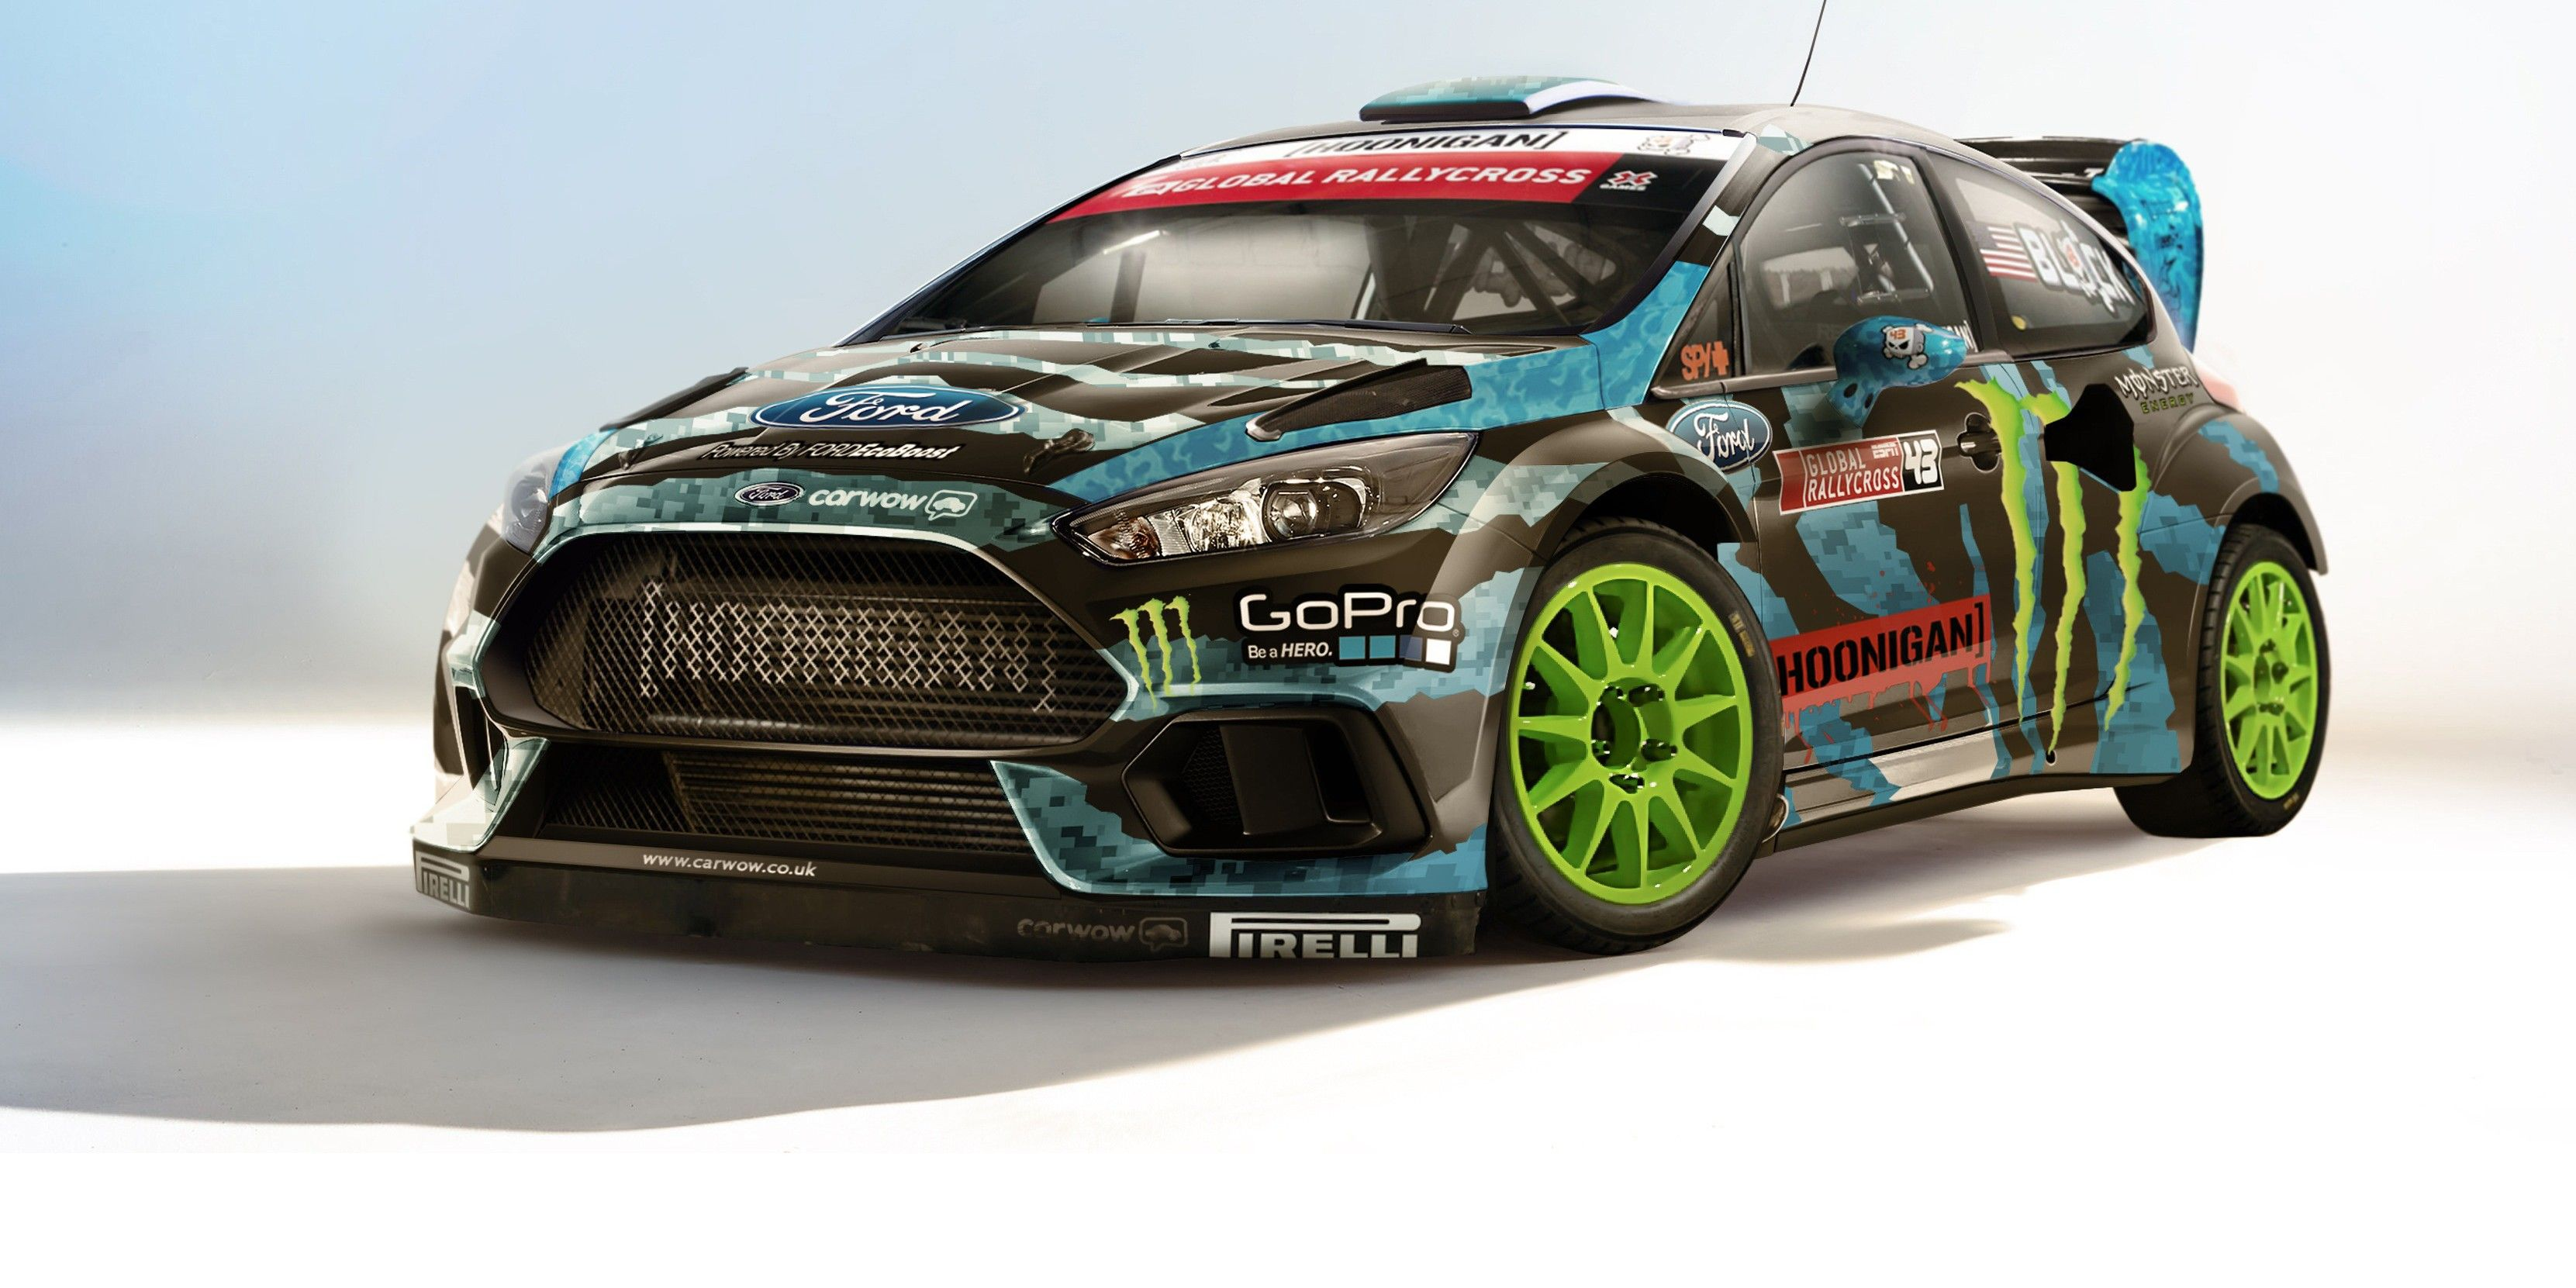 2015 ken block ford focus rs gymkhana imagined by carwow carwow